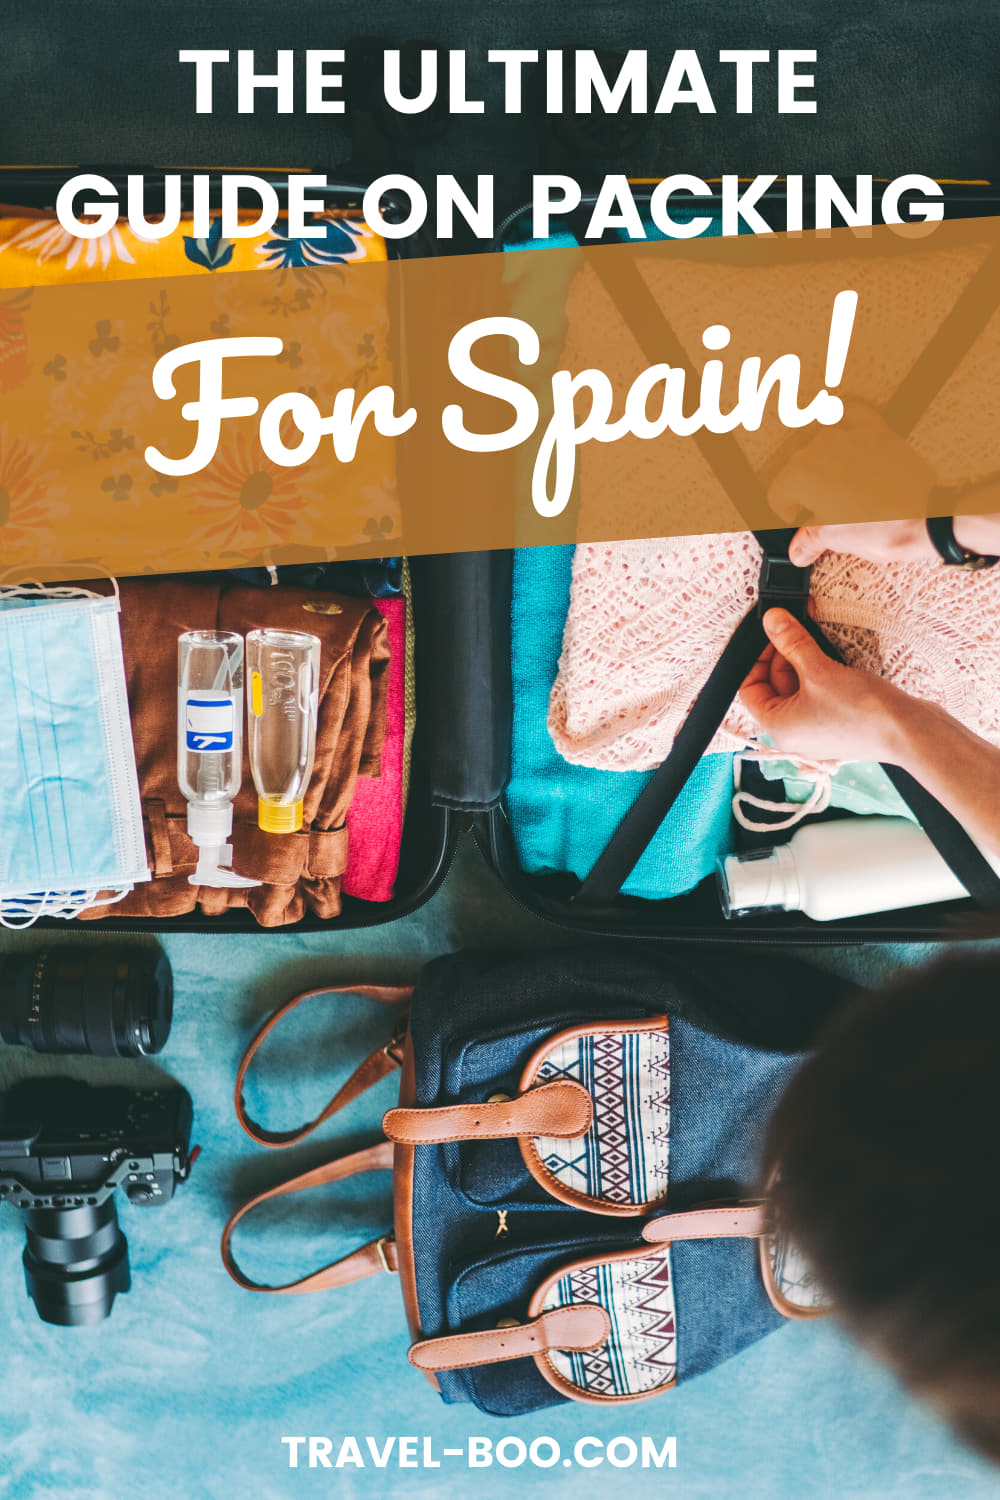 The Ultimate Guide on Packing for Spain. Spain Travel Guide, Spain Travel Tips, Spain Travel Itinerary, Spain Travel, Barcelona Travel Guide, Madrid Travel Guide, What to pack for Spain, Spain Packing List. #spaintravel #spaintravelguide #spaintraveltips